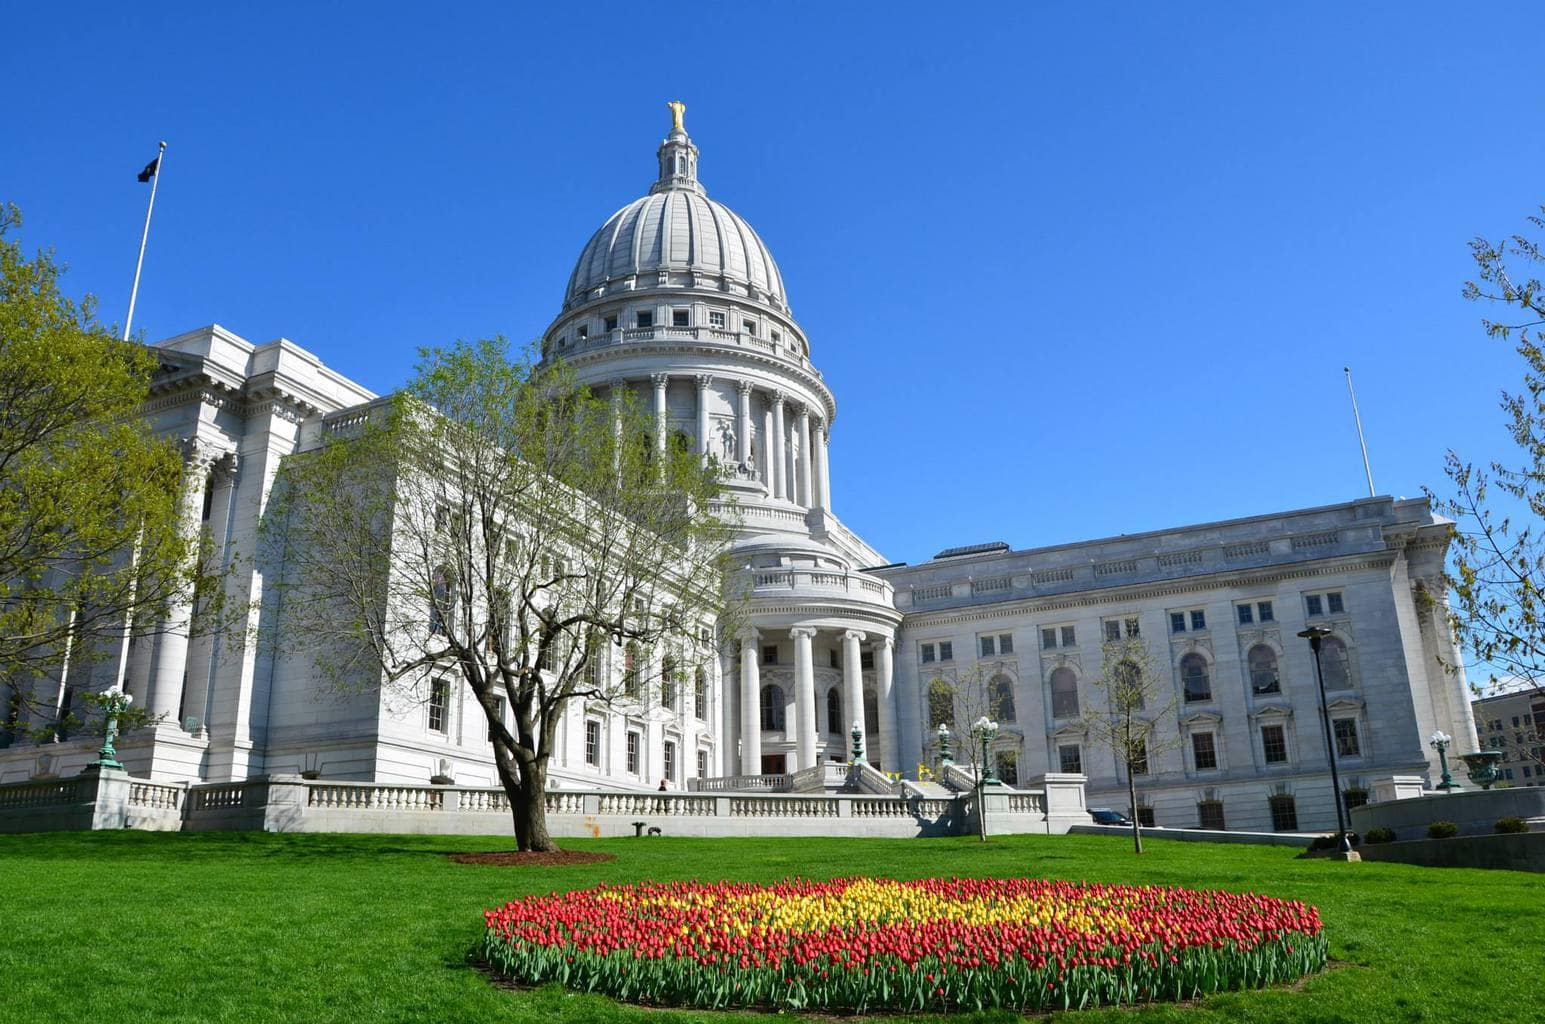 Wisconsin State Capitol Building during Tulip Festival